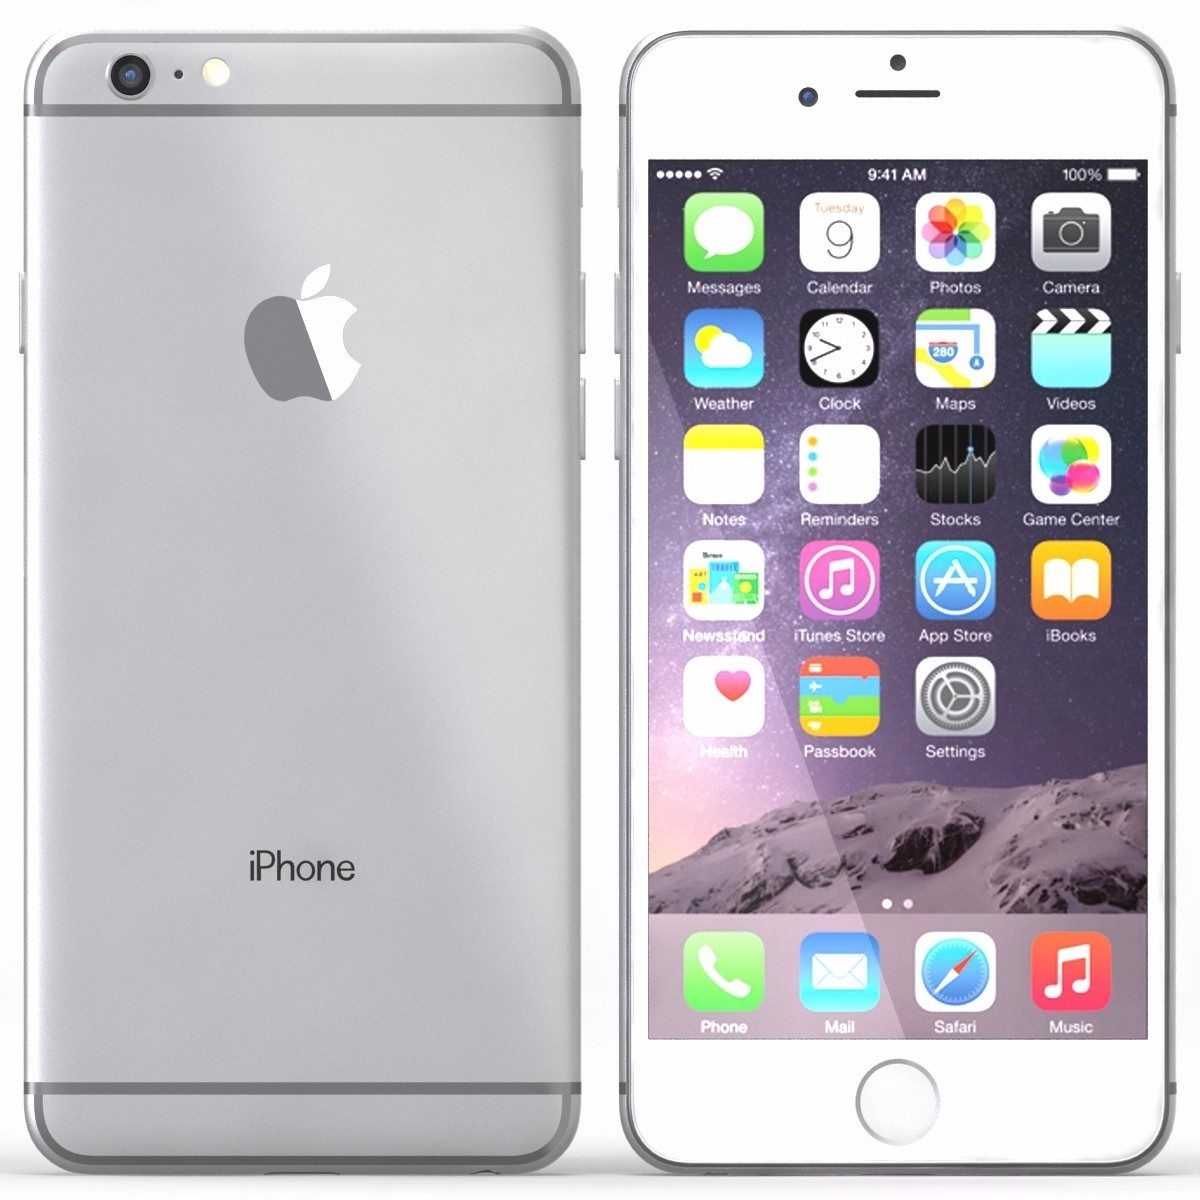 Precio S4 Libre Celular Apple Iphone 6 64gb Space Gray Grado A 7 490